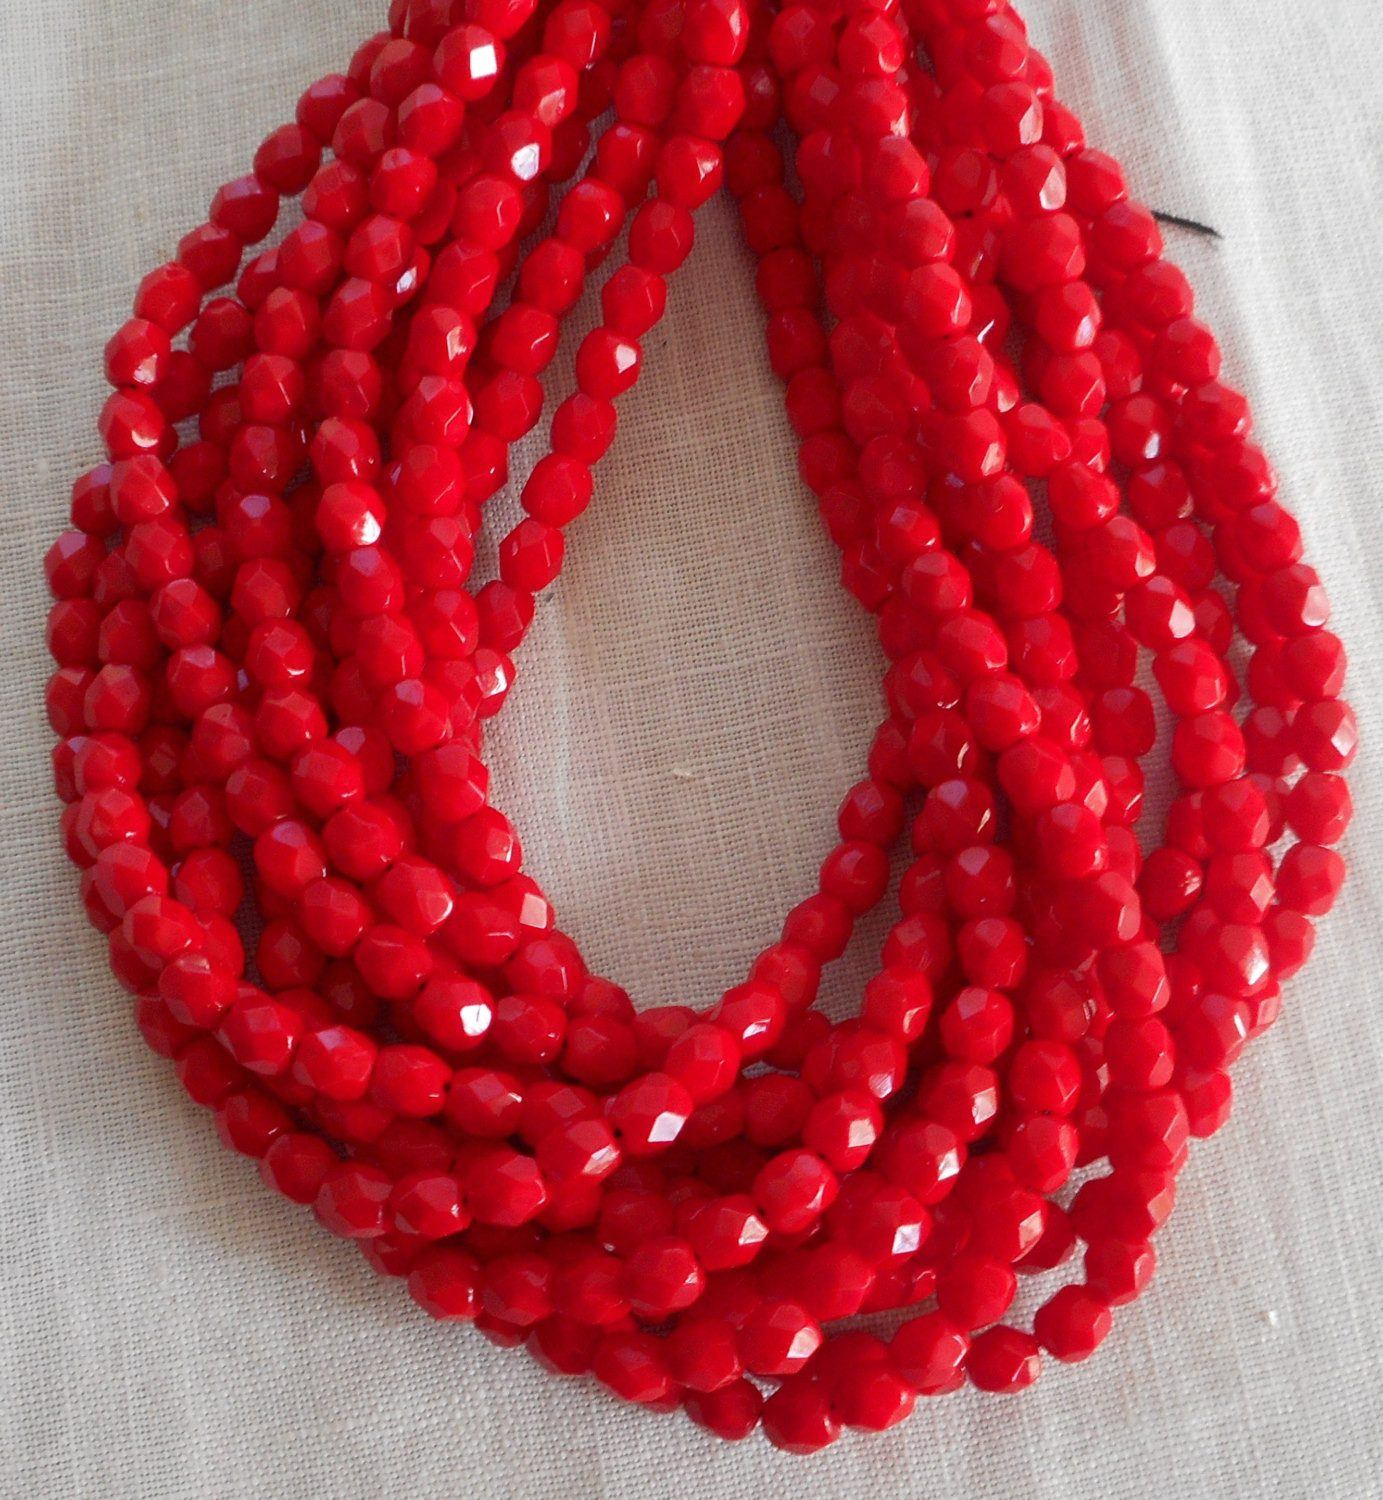 pearl earrings making bracelet product design new nigeria for red cheap african captivating detail necklace set beads jewelry